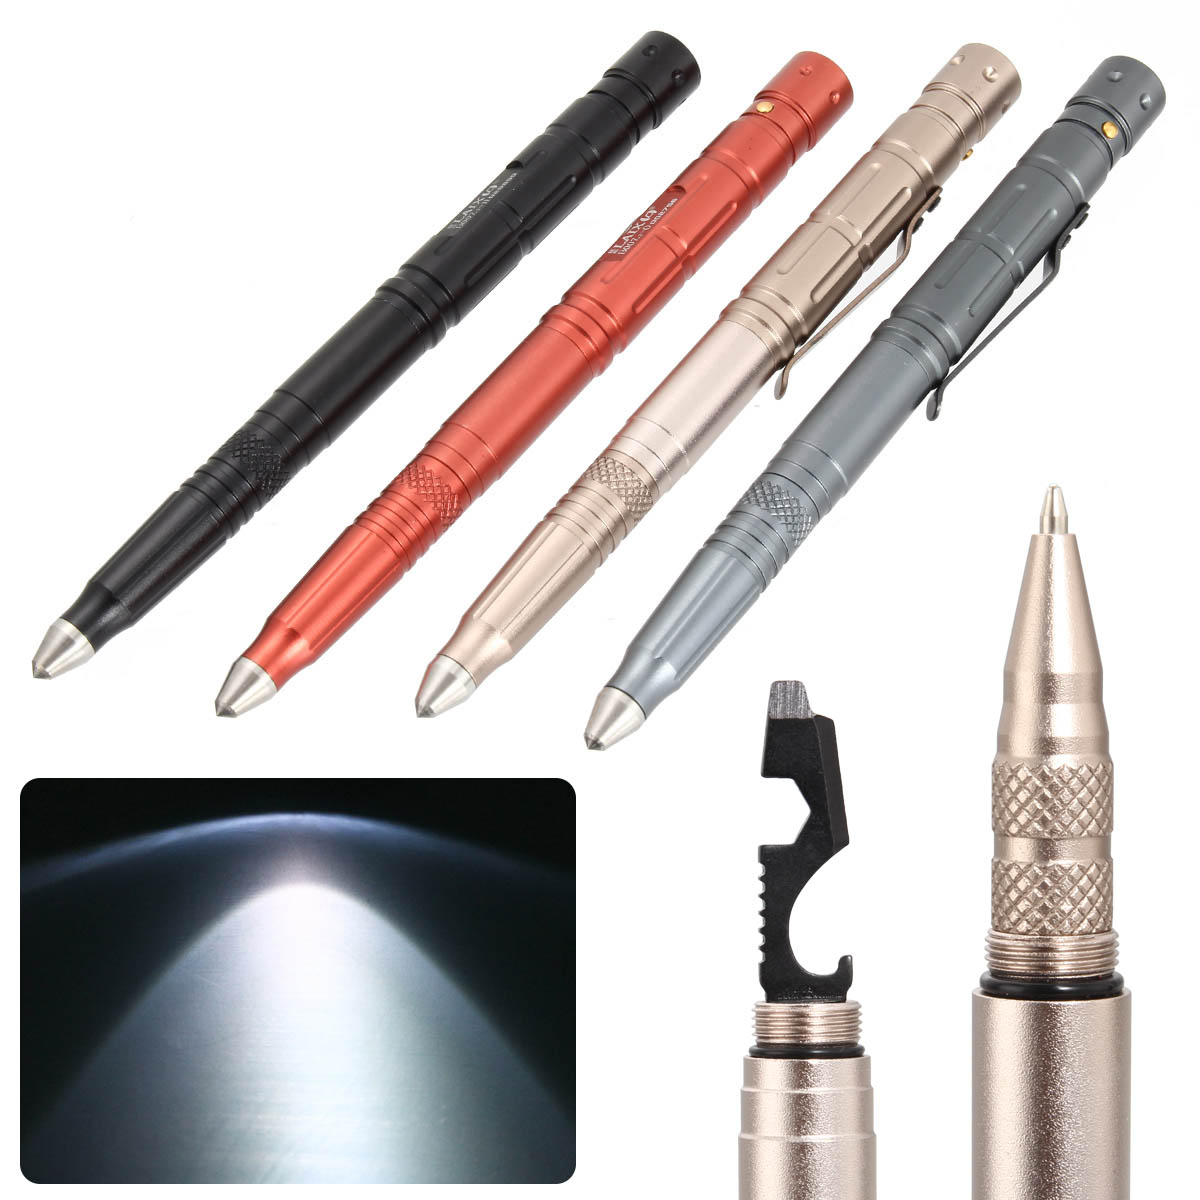 Multi-function Tactical Pen Survival Military LED Flashlight Glass Breaker Self Defense Tool Ballpoint Pens NC99